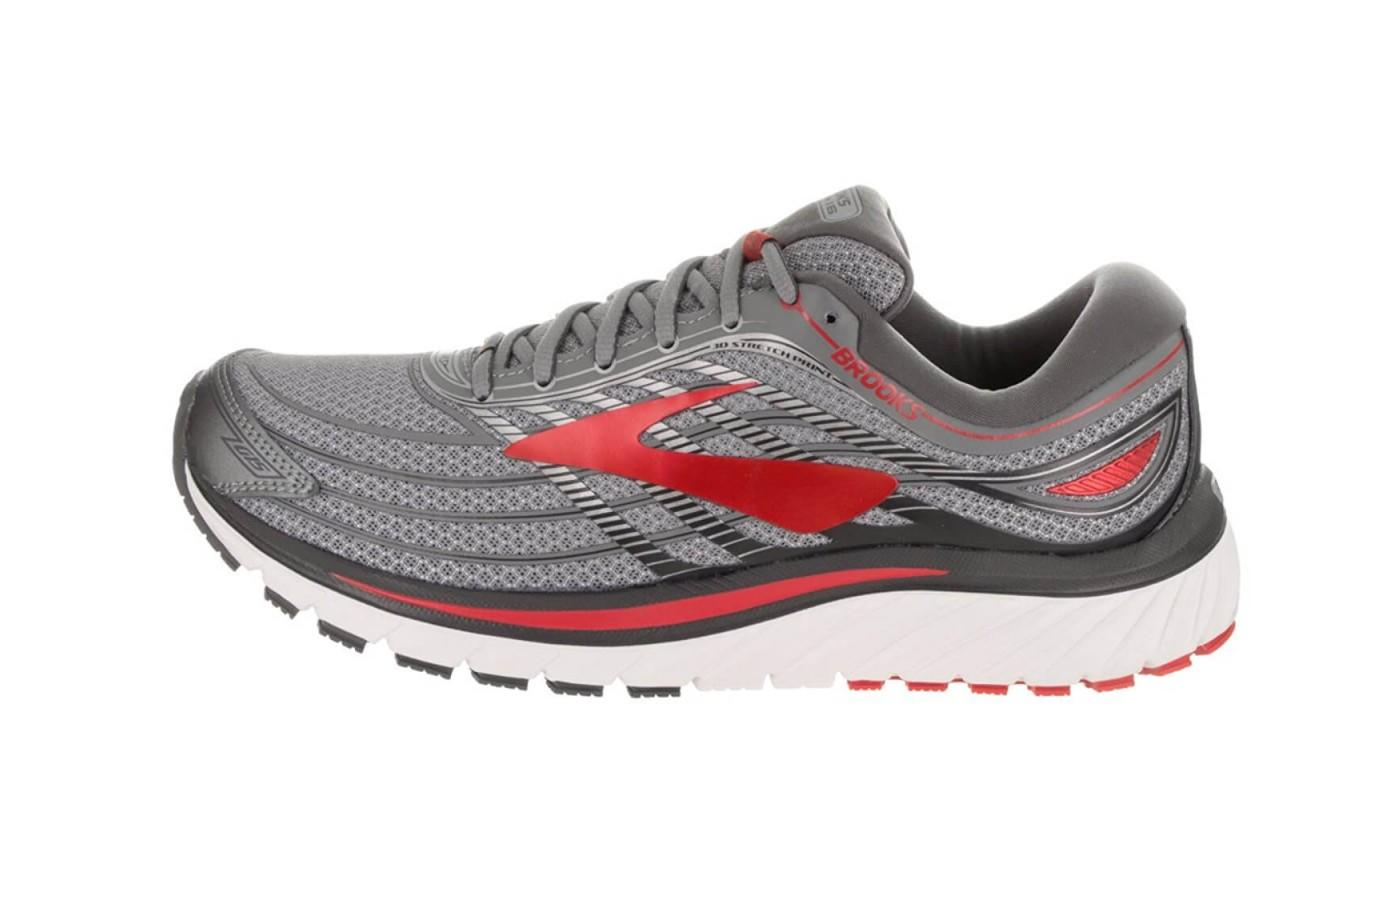 ceda4297b6375 Brooks Glycerin 15 Fullyed - To Buy or Not in May 2019